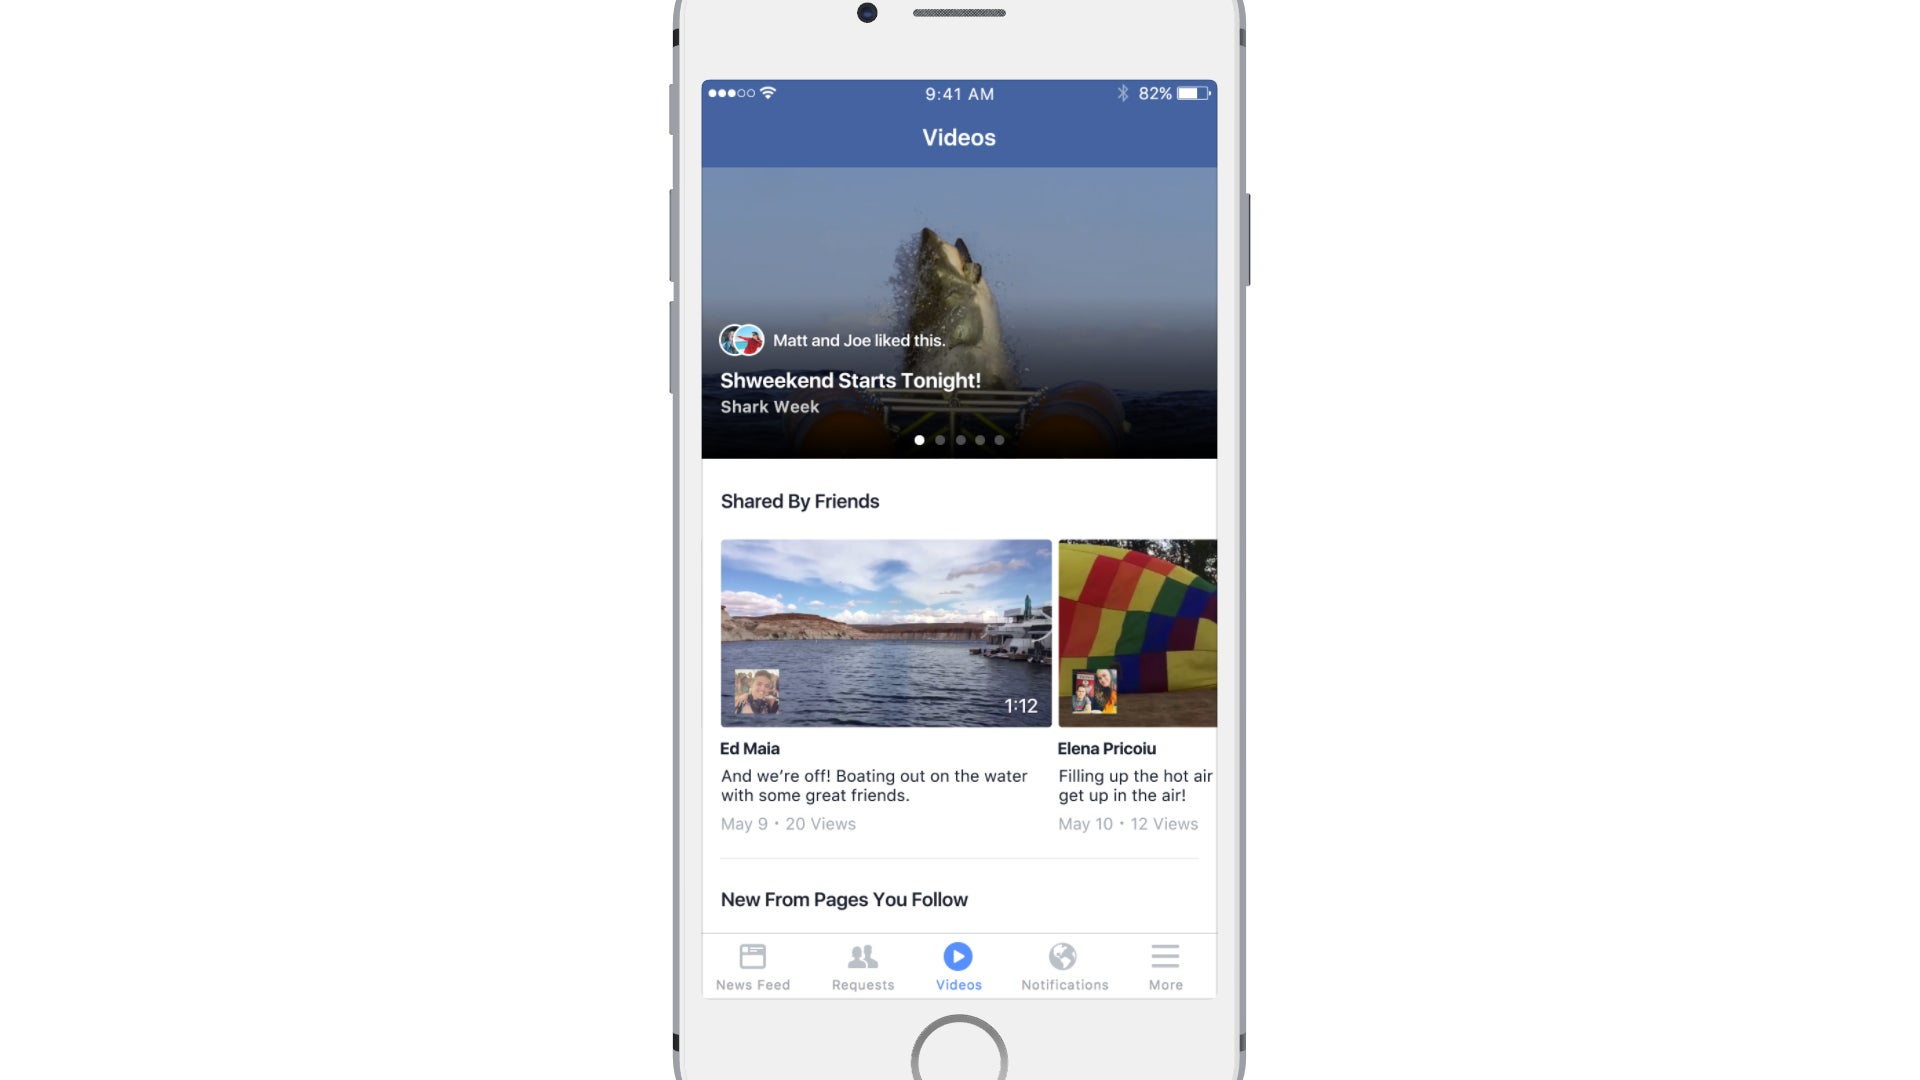 Facebook Is Testing A Video Feed To Compete Directly With YouTube